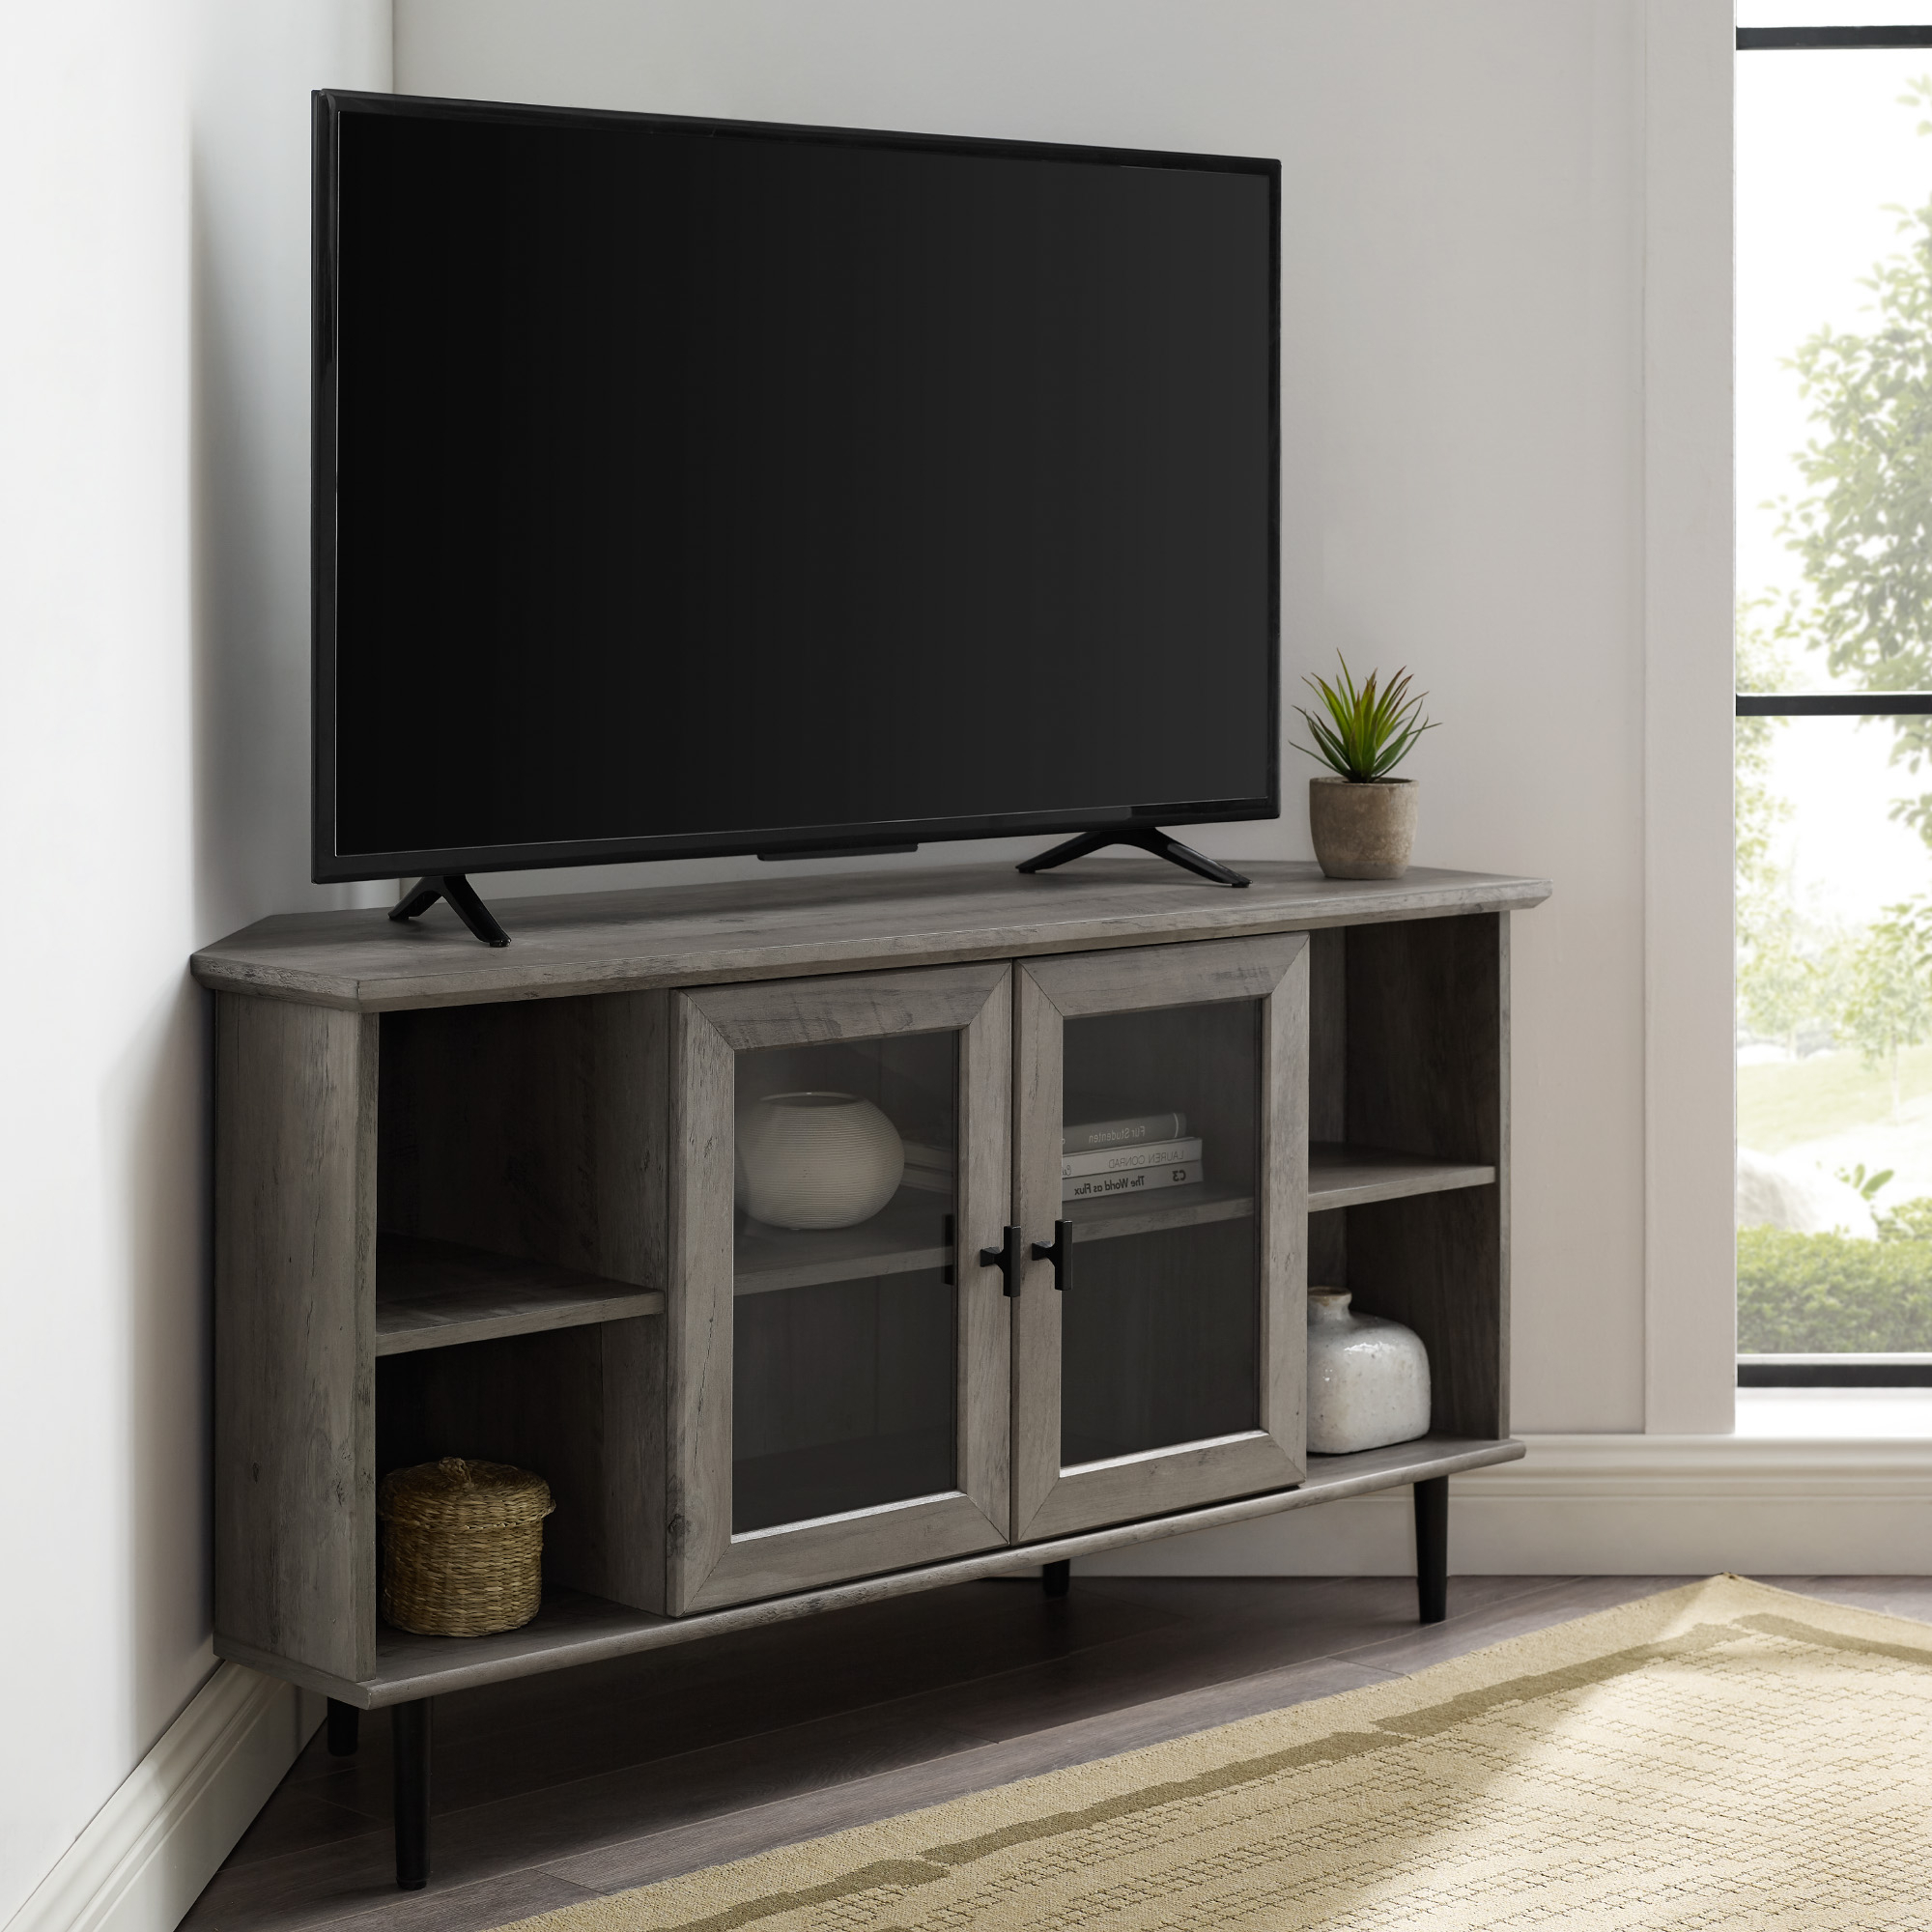 """Manor Park Glass Door Corner Tv Stand For Tvs Up To 55 Within 60"""" Corner Tv Stands Washed Oak (View 1 of 20)"""